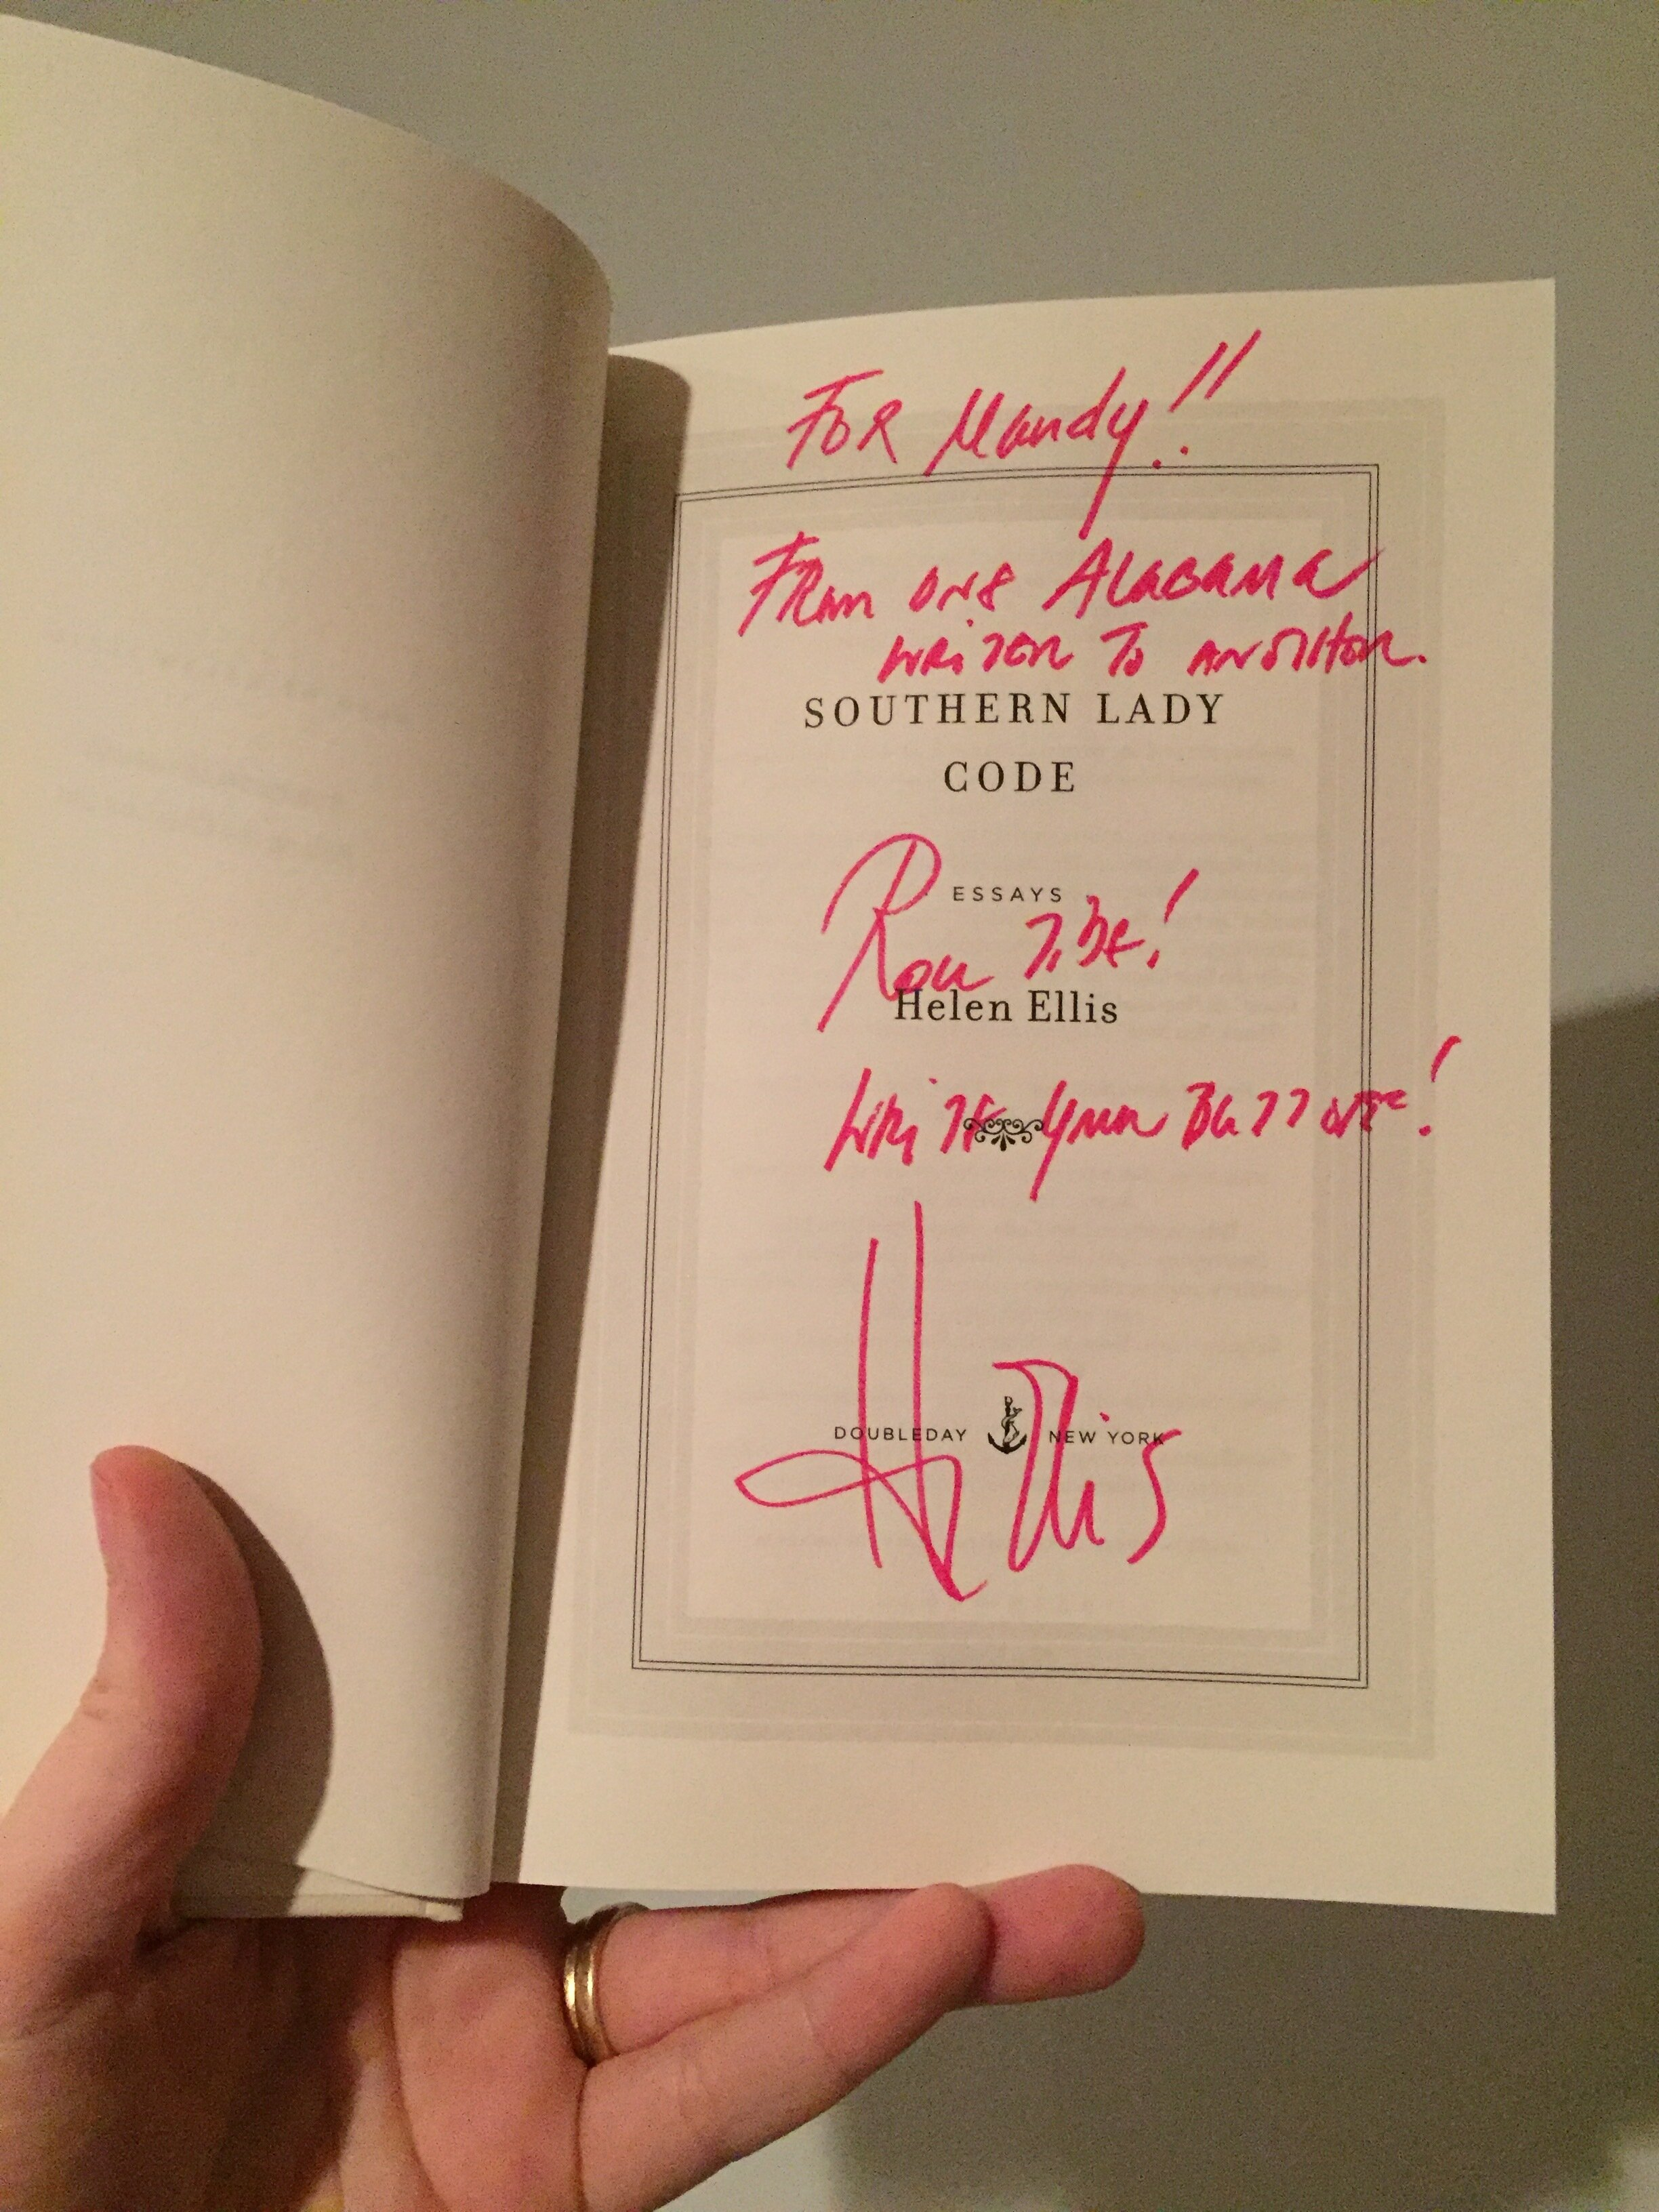 [image description: My copy of Helen's book Southern Lady Code open to the title page where she signed the book.]